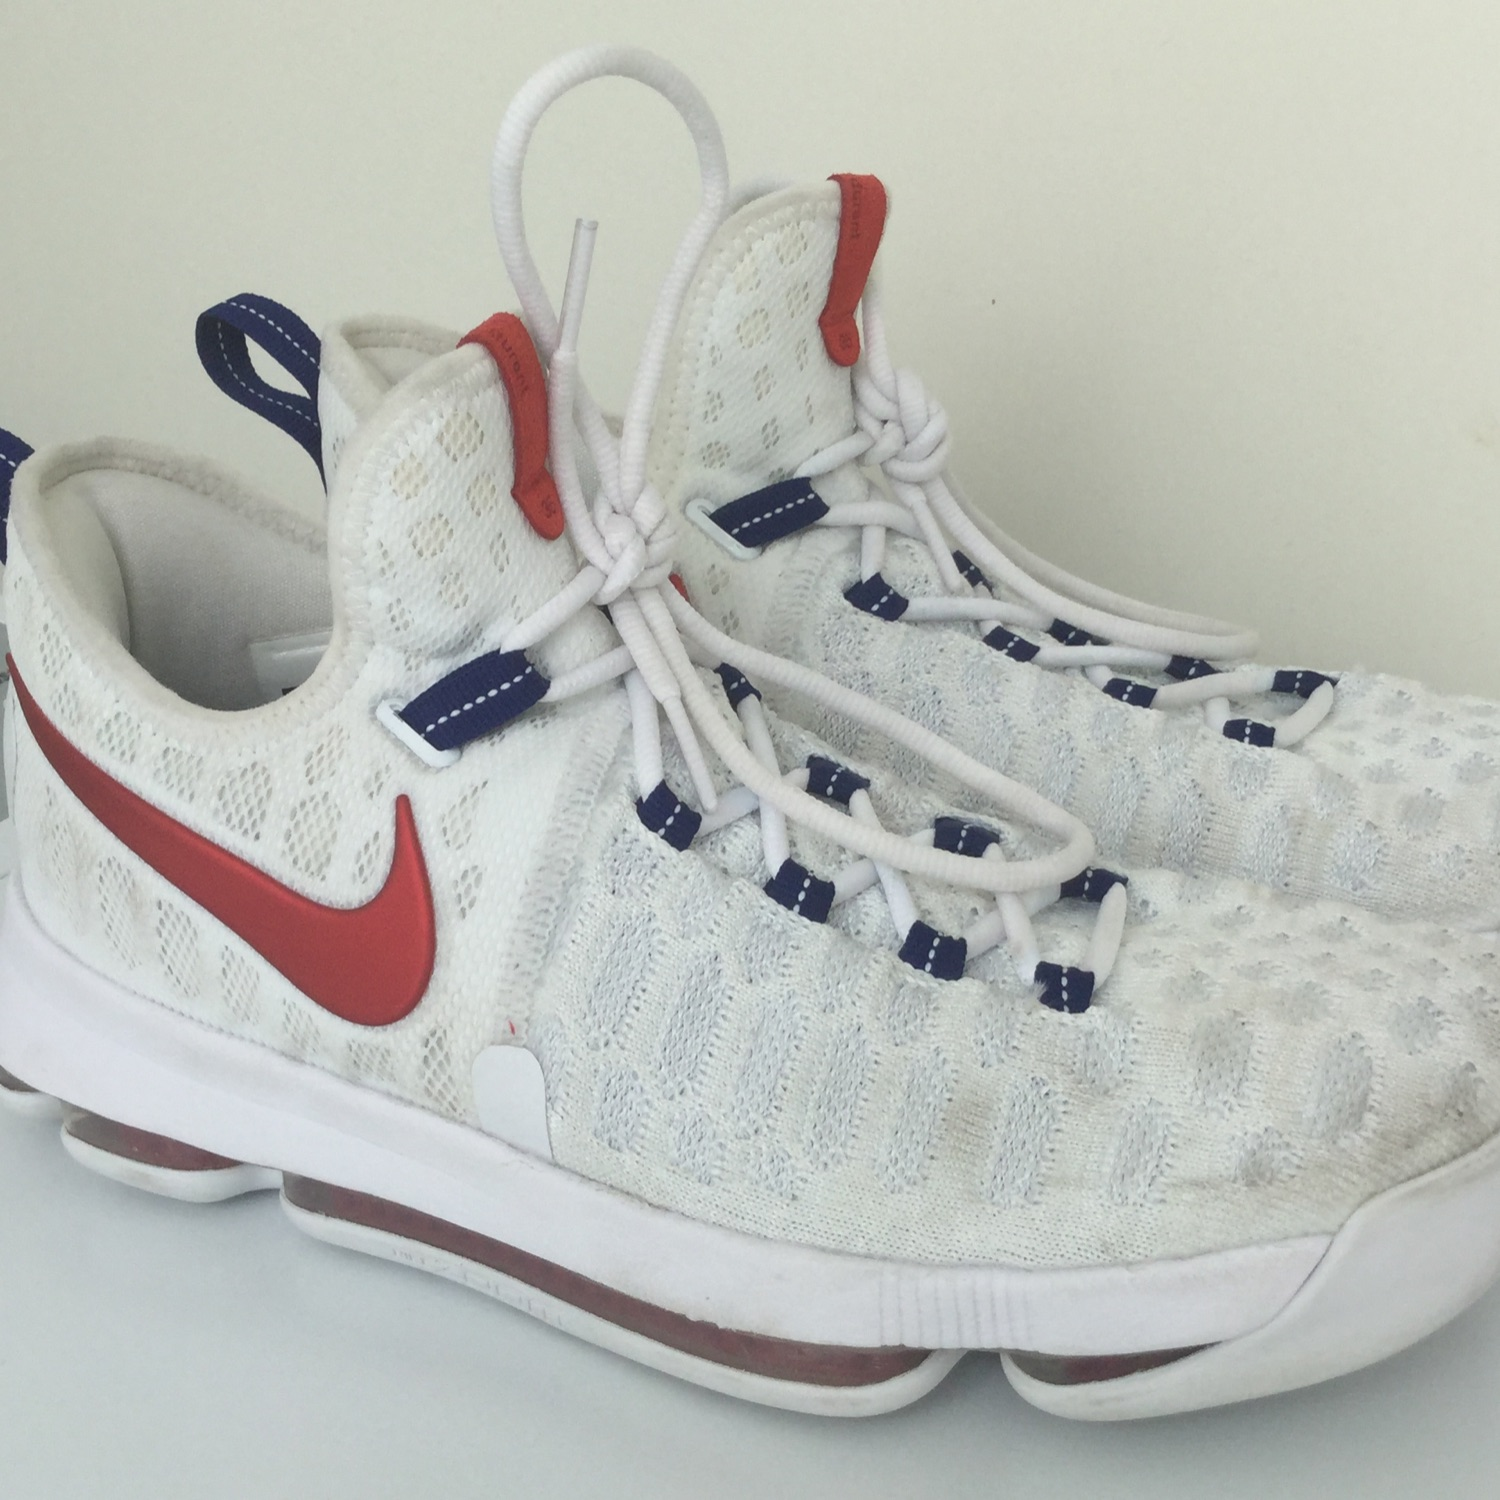 basketball shoes size 8 Online Shopping